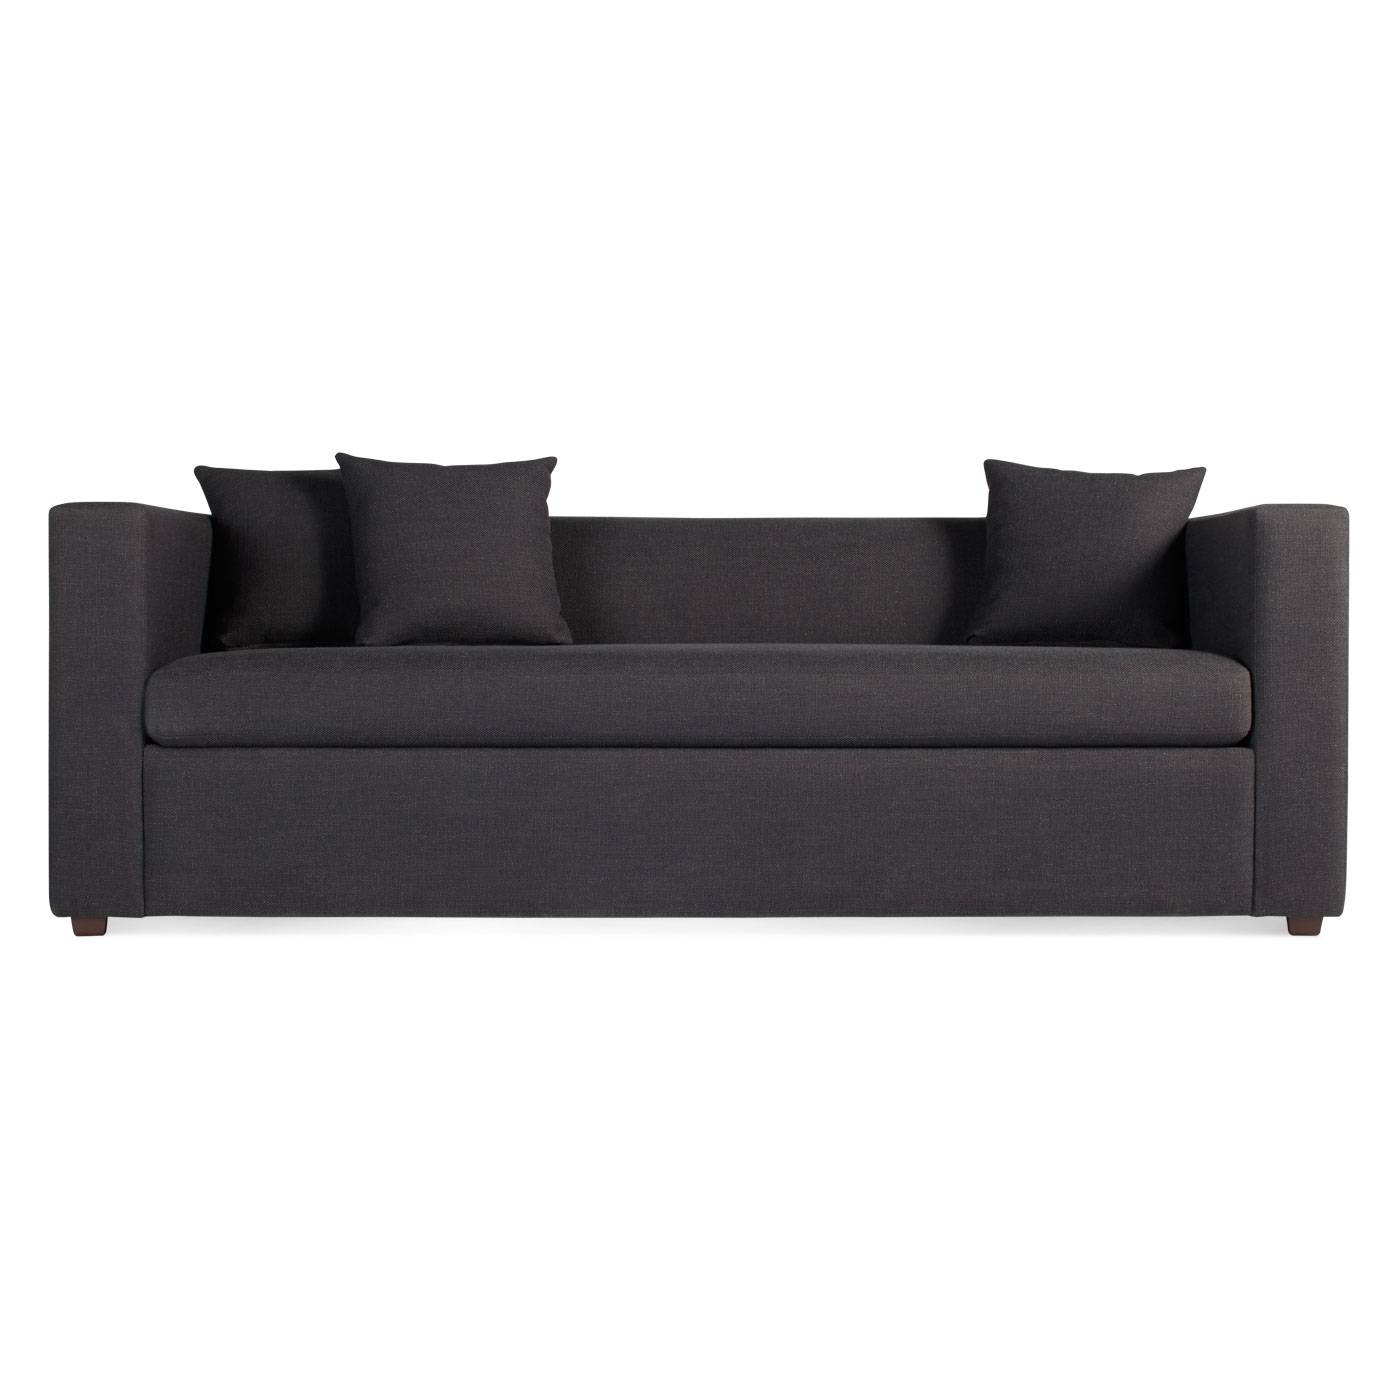 Mono Modern Sleeper Sofa – Single Cushion Sofa | Blu Dot With Cushion Sofa Beds (View 14 of 30)